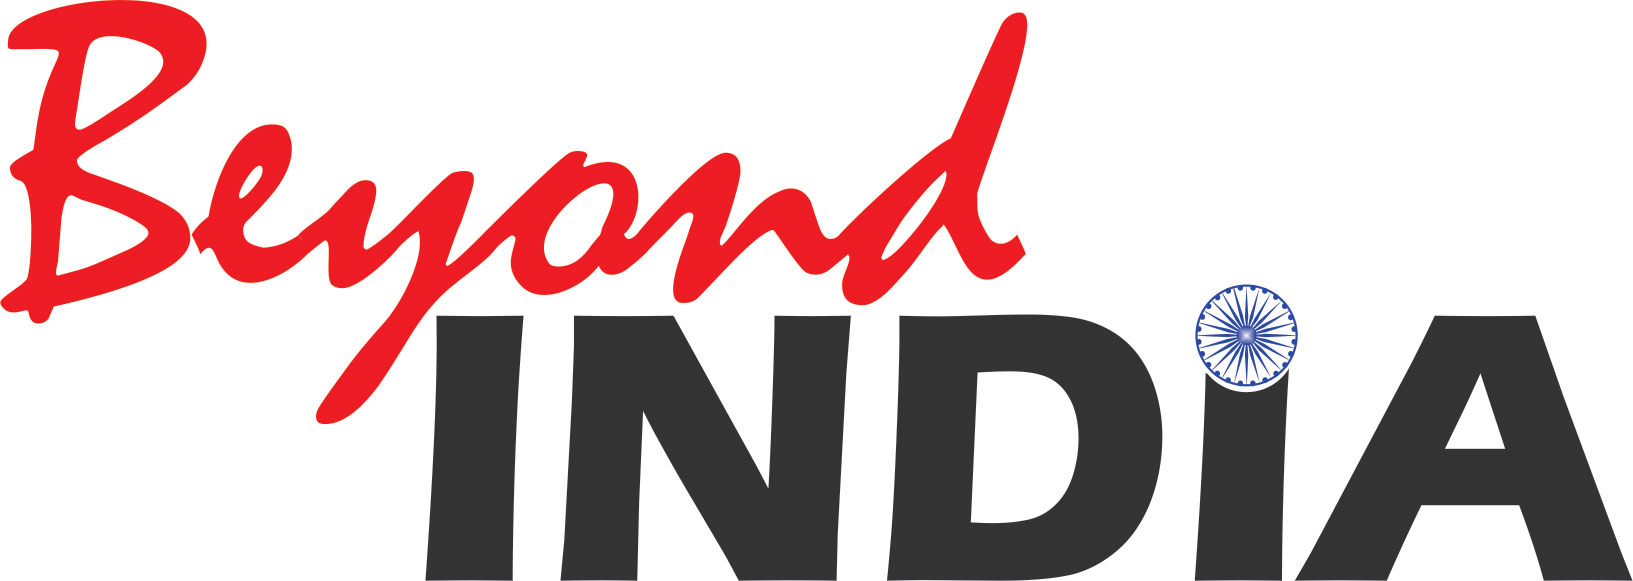 http://beyondindia.in/wp-content/uploads/2018/06/Beyond-India-web-logo.jpg